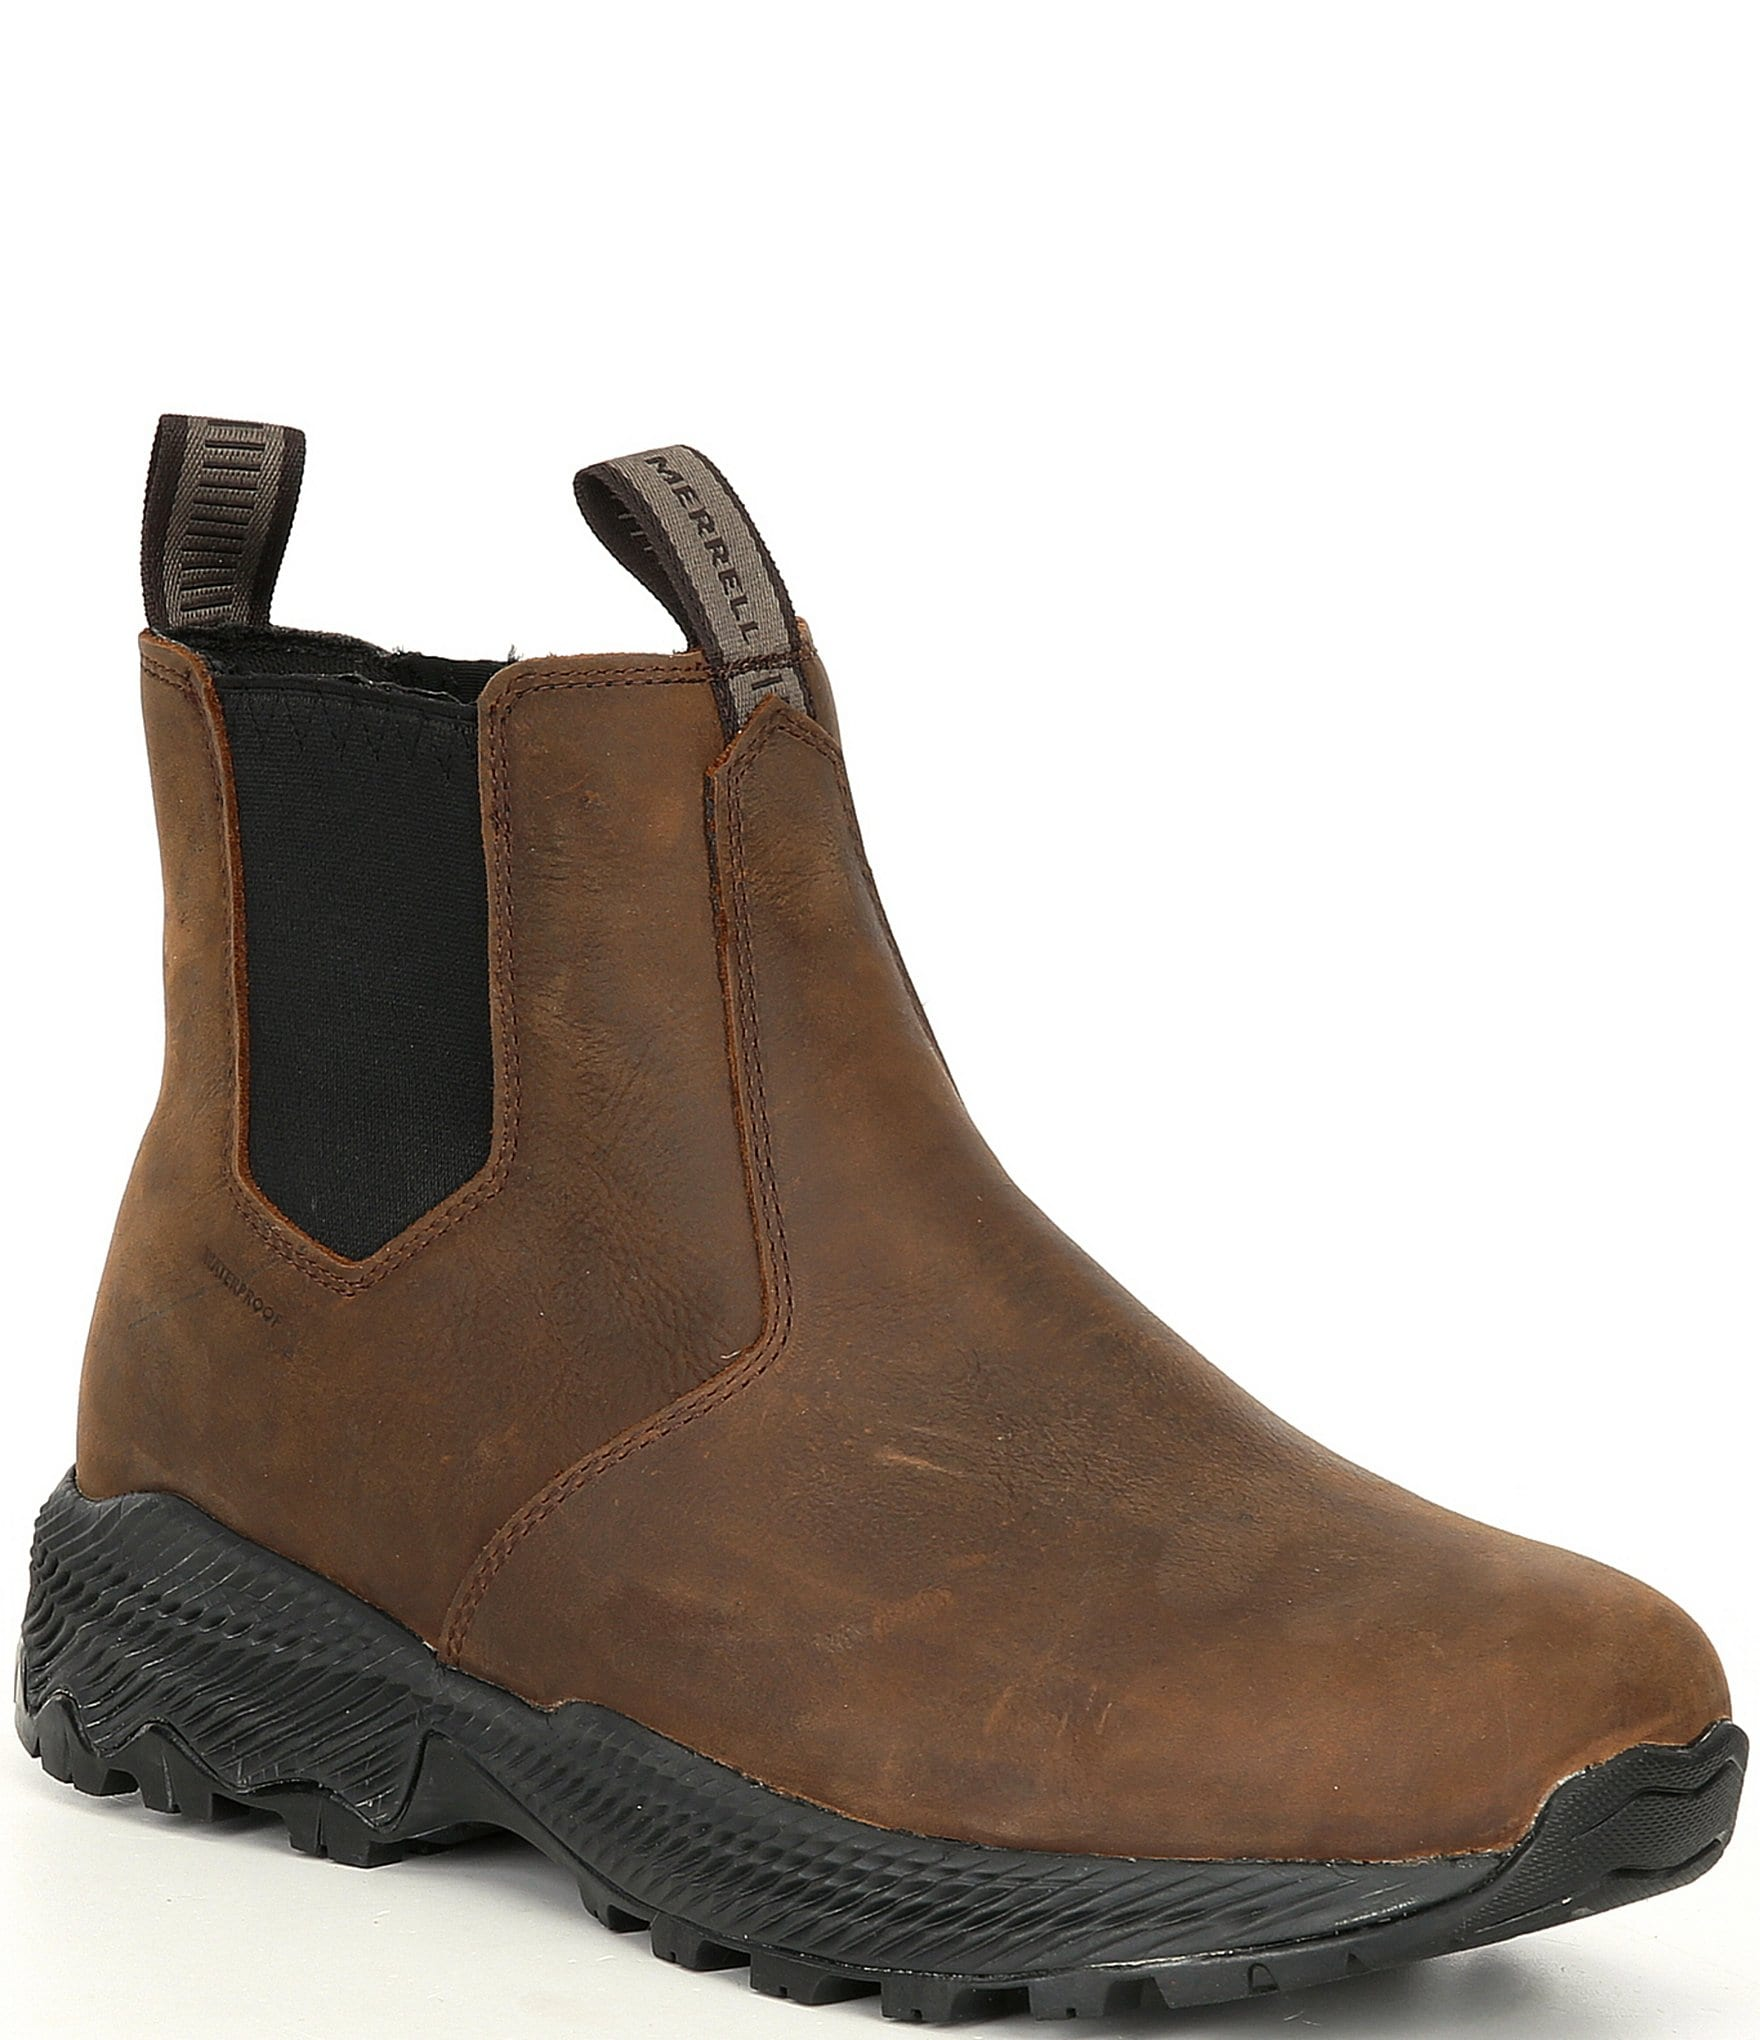 Forestbound Waterproof Chelsea Boots